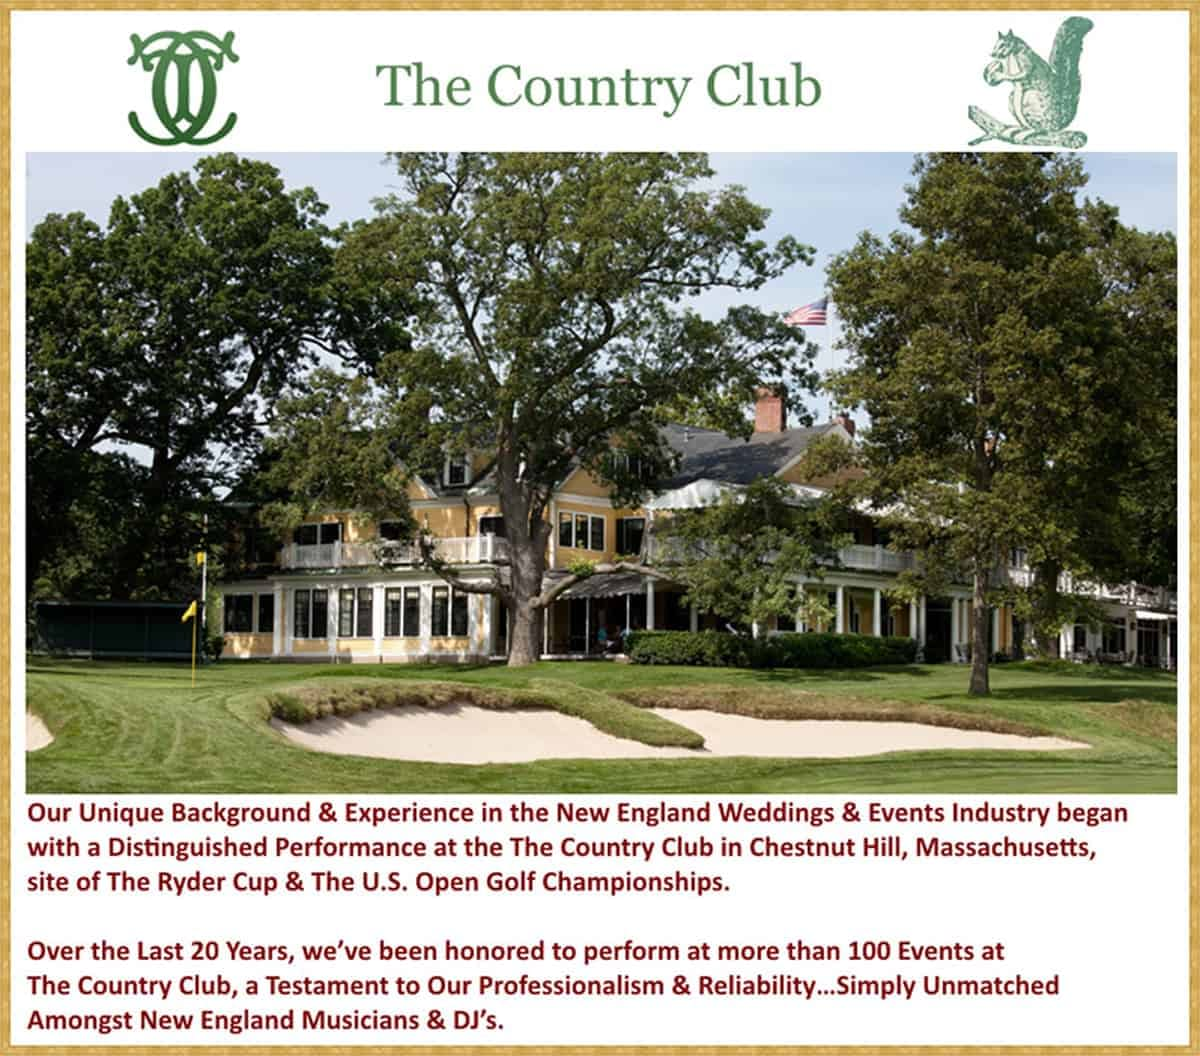 Aaron-Topfer-The-Country-Club-1-1